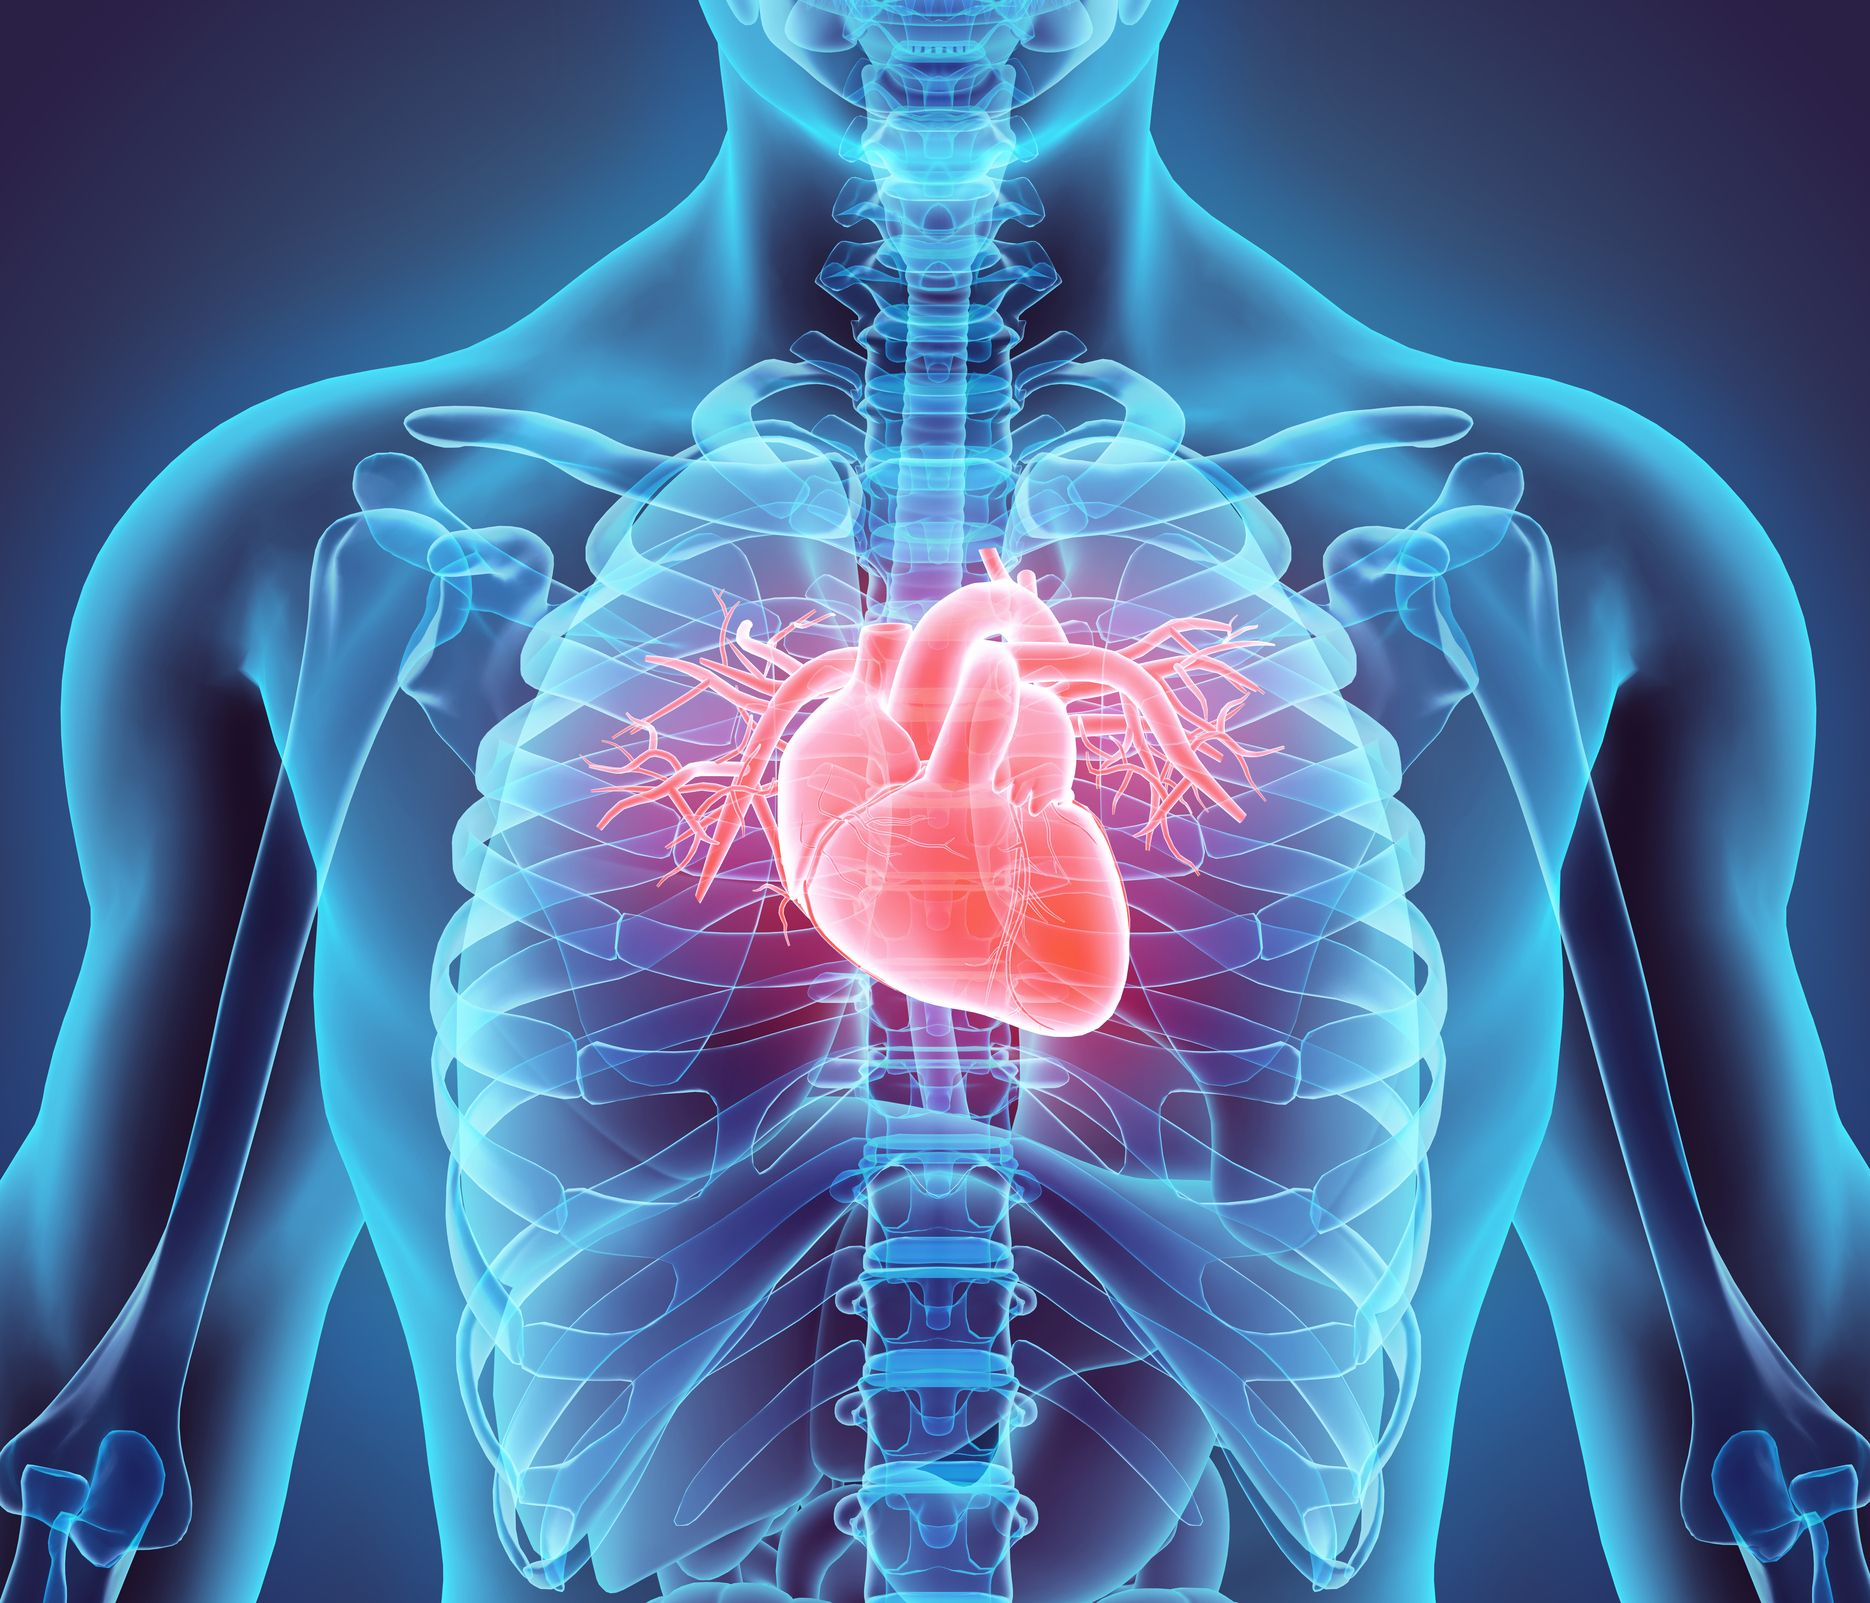 Scientists Grow Beating Human Heart Tissue From Stem Cells